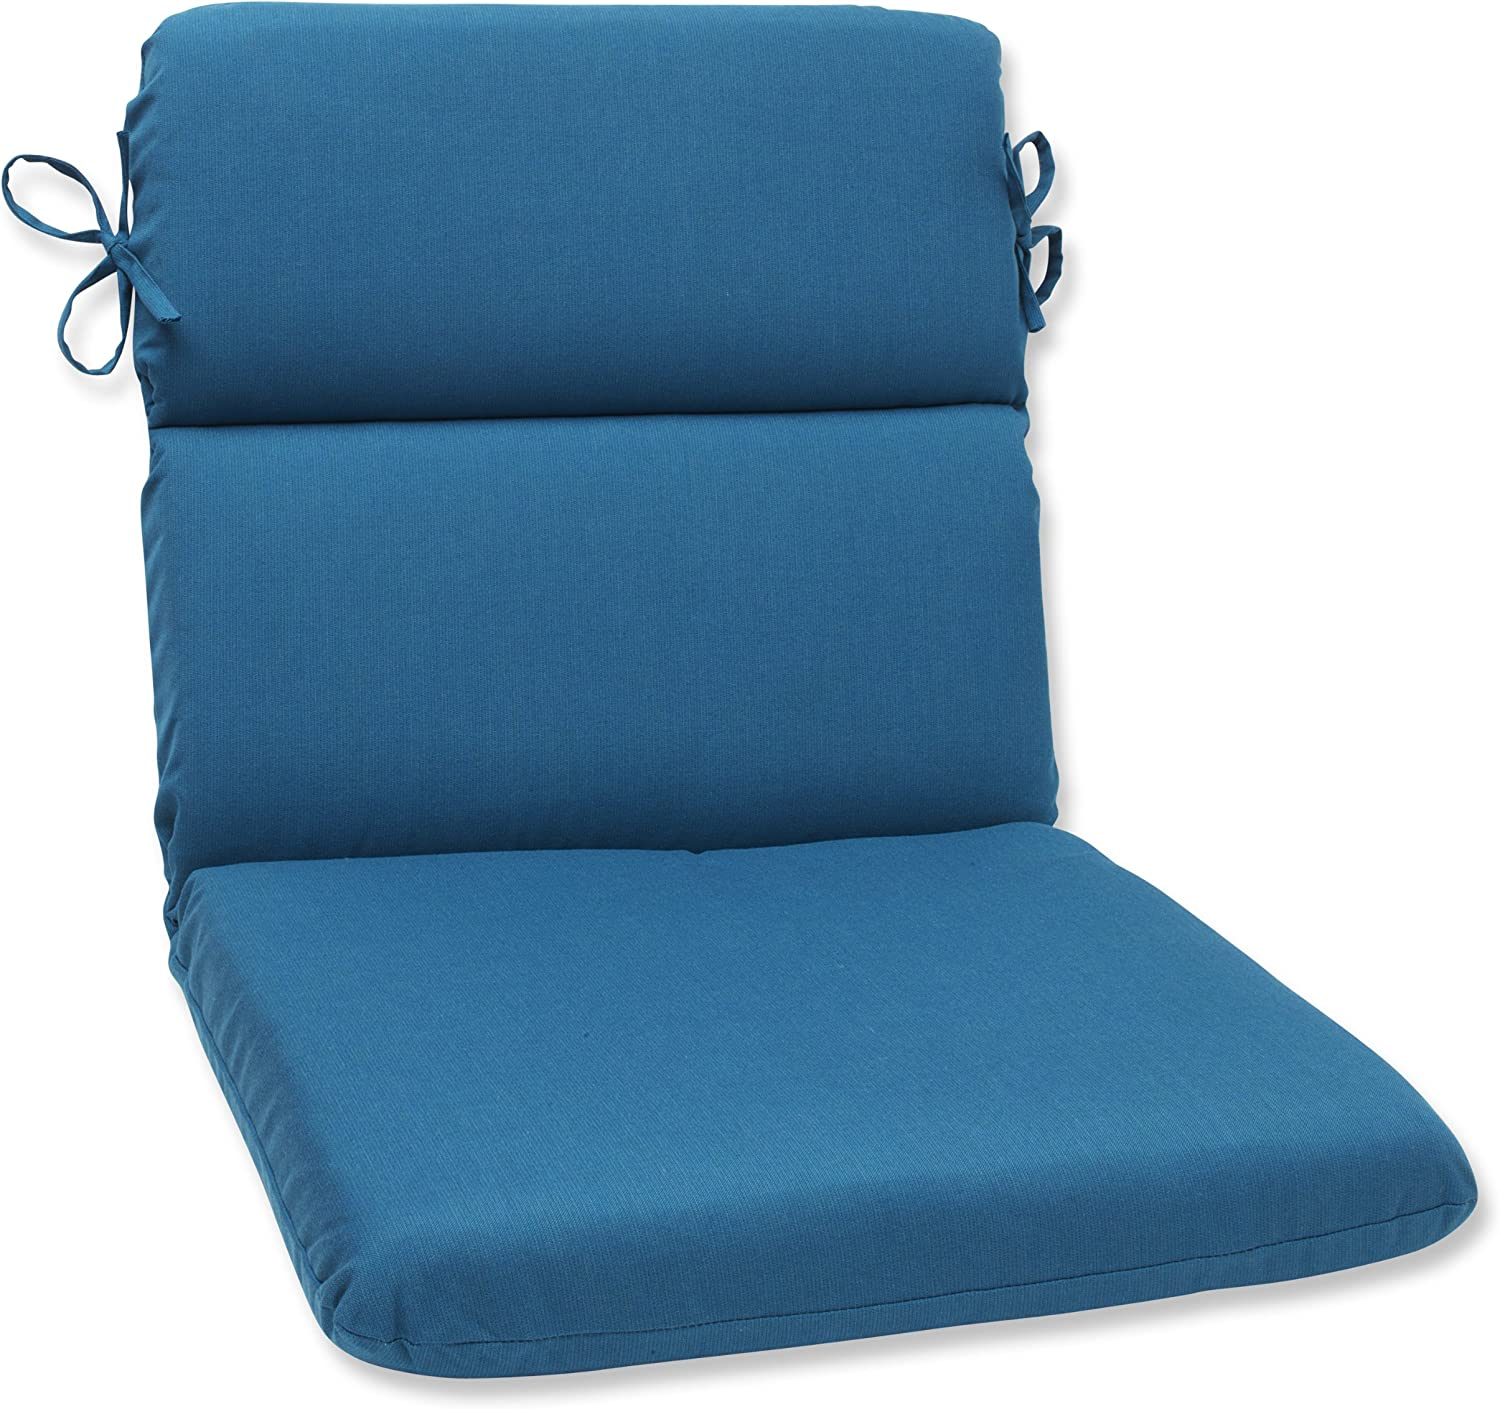 Pillow Perfect Indoor Outdoor Rounded Corners Chair Cushion with Sunbrella Spectrum Peacock Fabric, 40.5 in. L X 21 in. W X 3 in. D